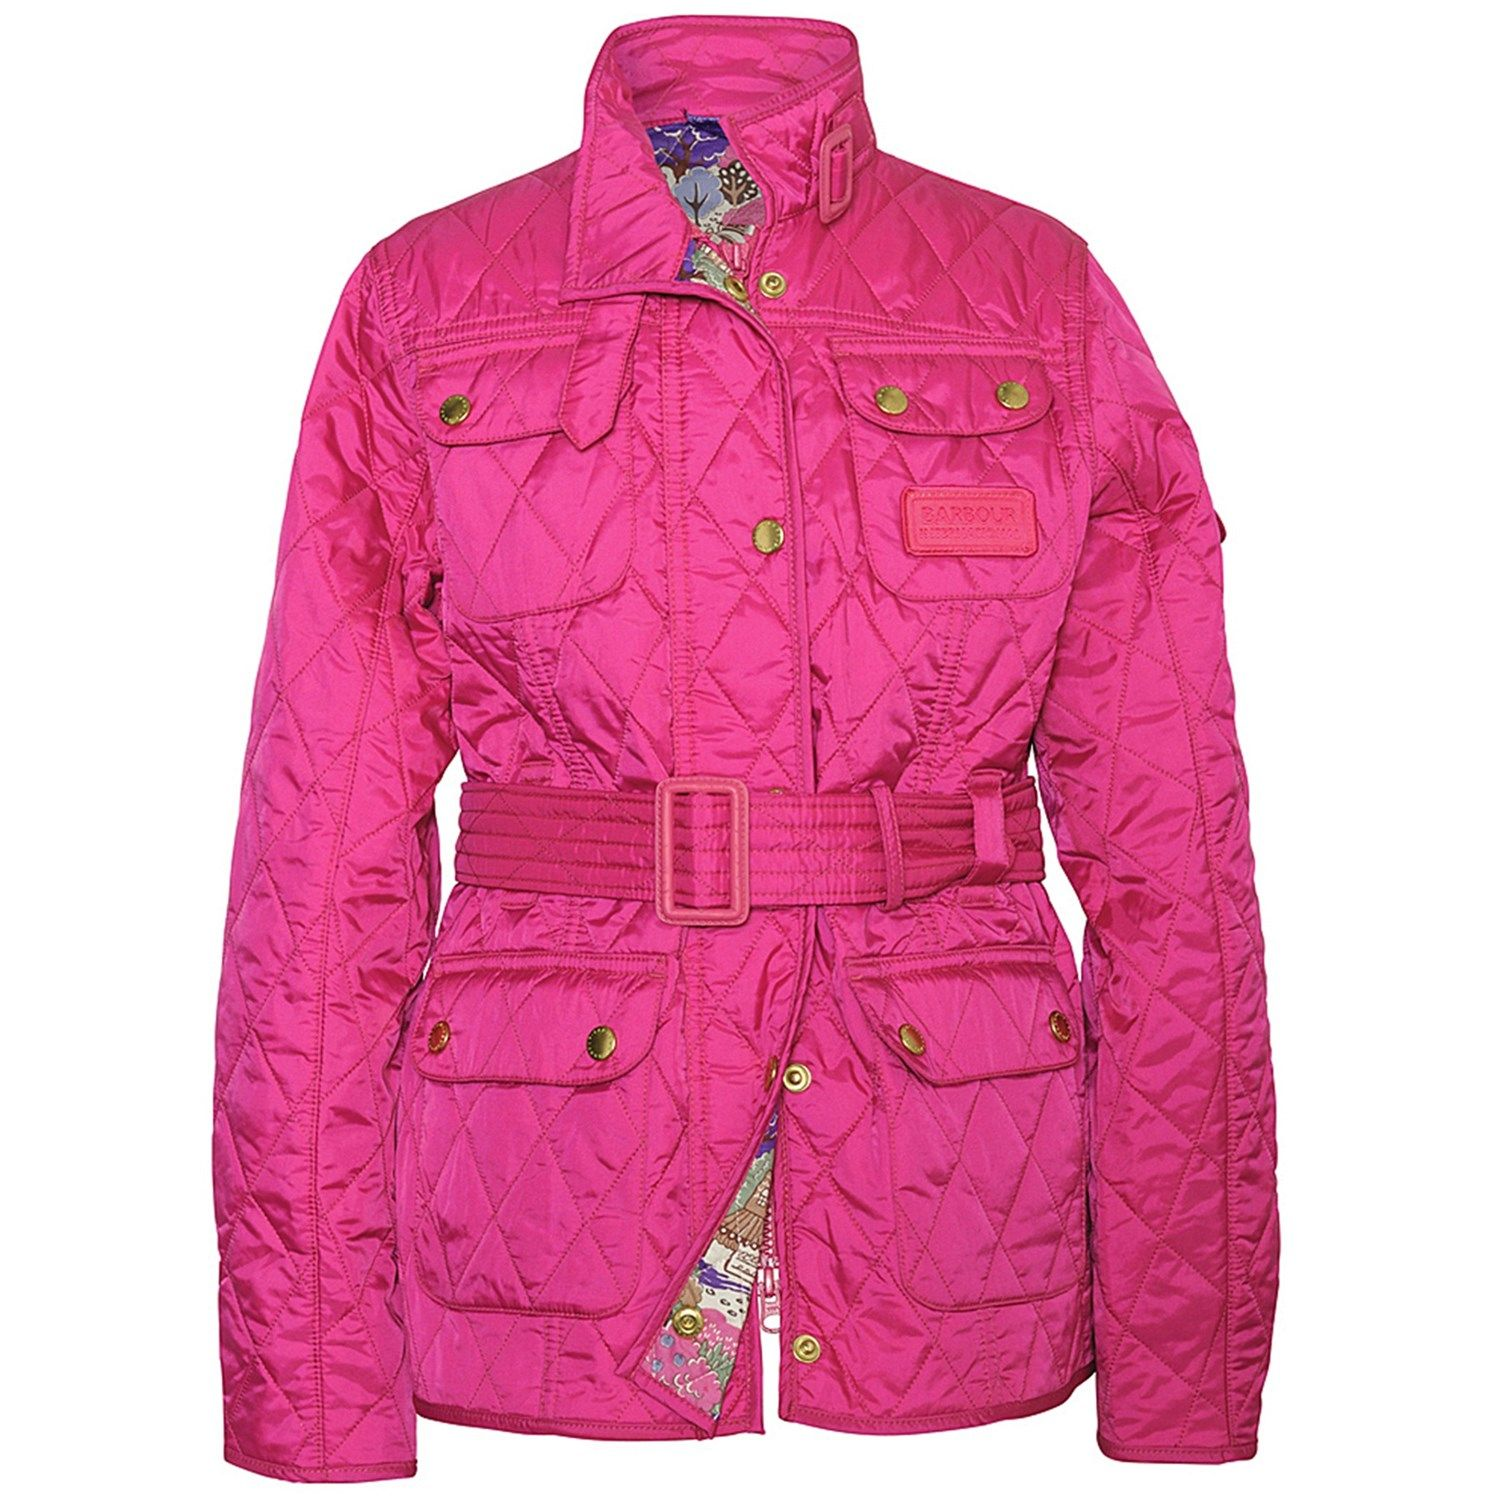 Jacket by Barbour International 10-11 yrs